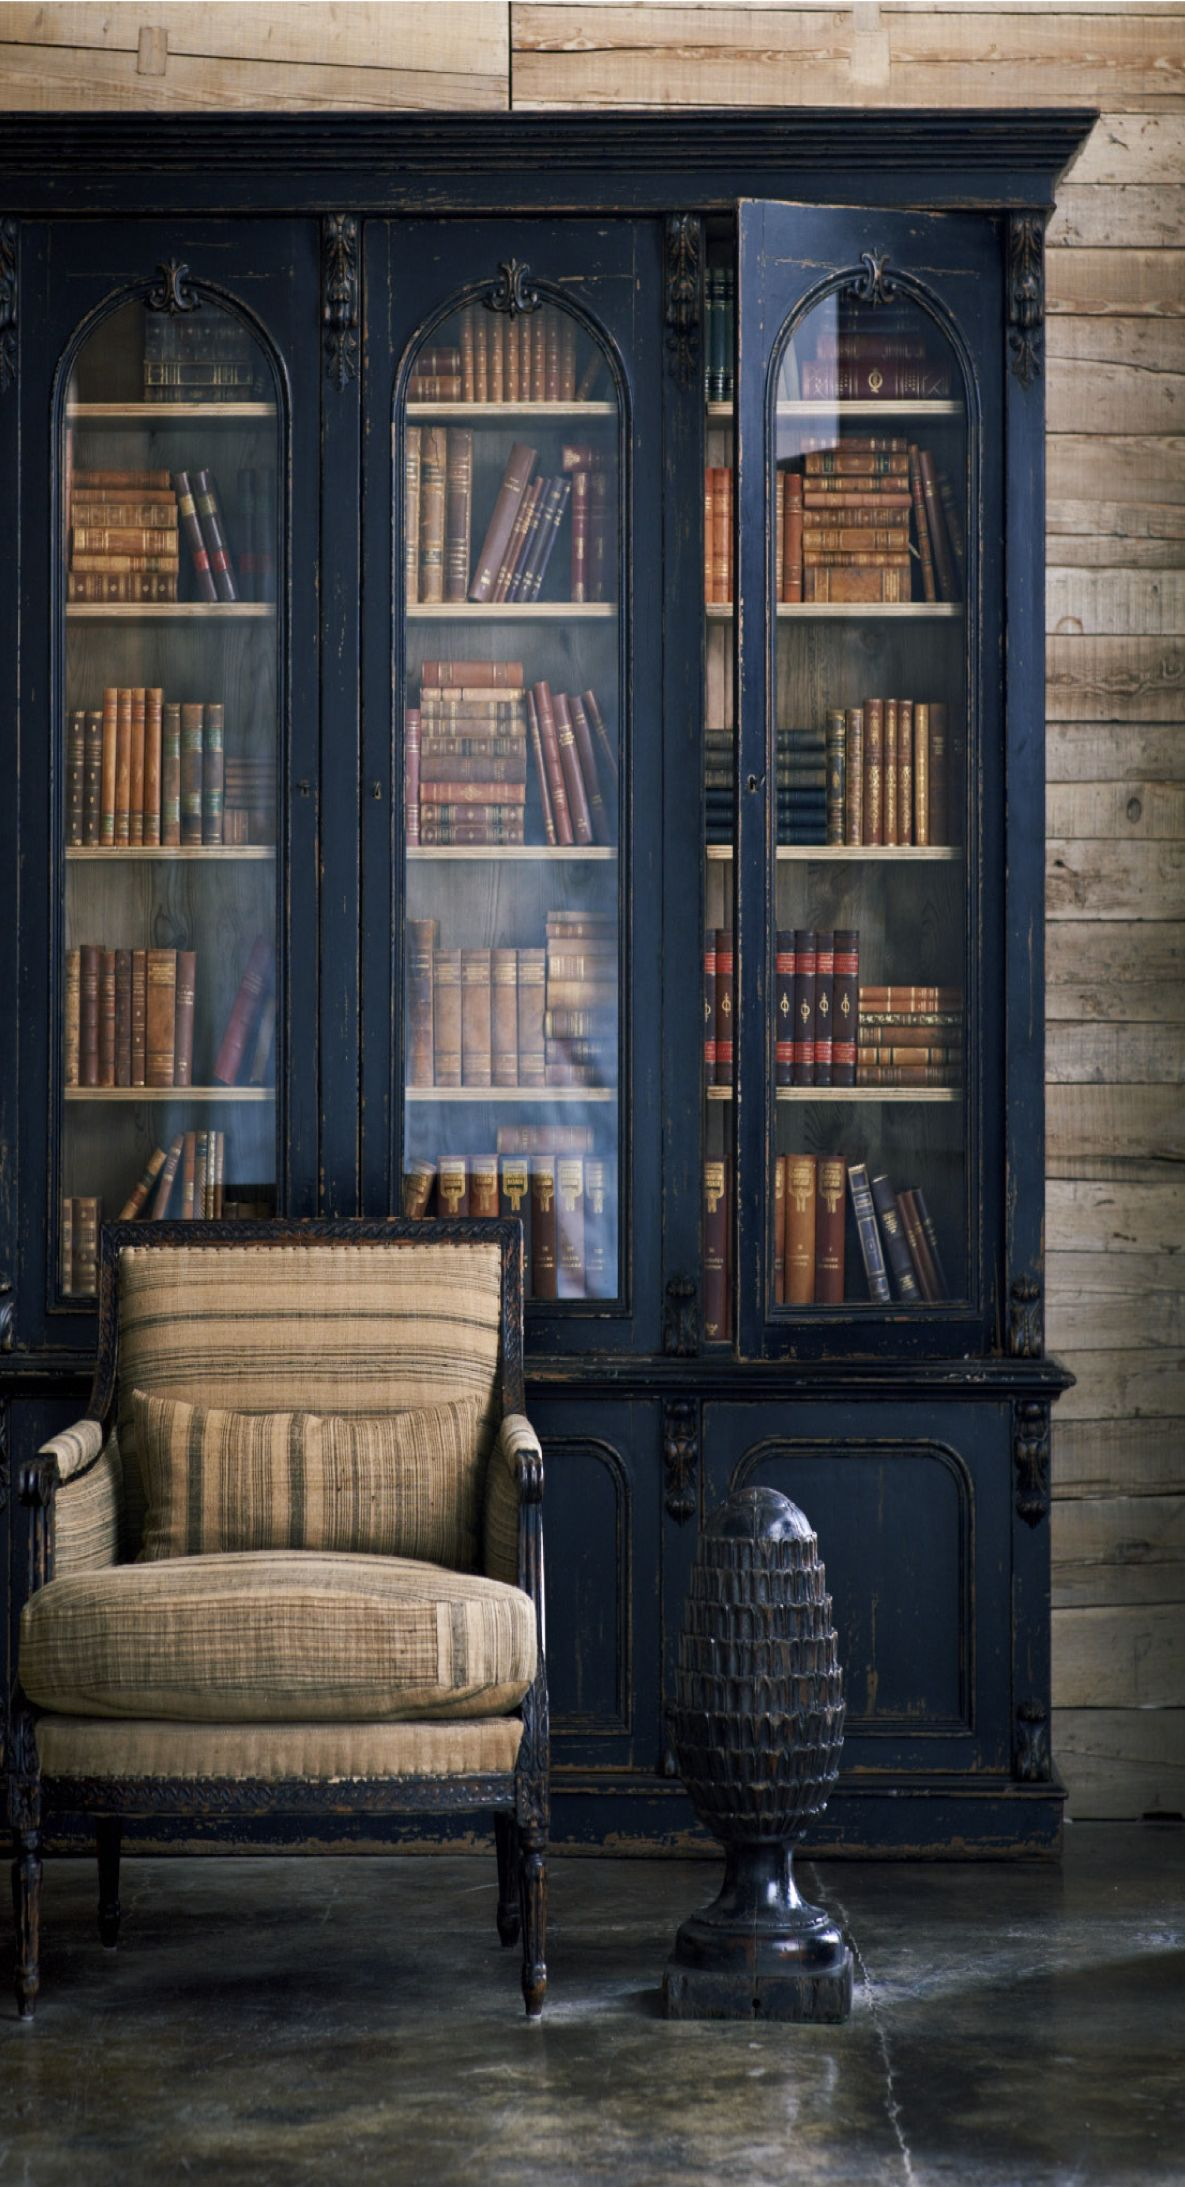 Ralph lauren home collection furniture - Ralph Lauren Home Collection A W 2013 Tall Glass Doored Book Case Over Solid